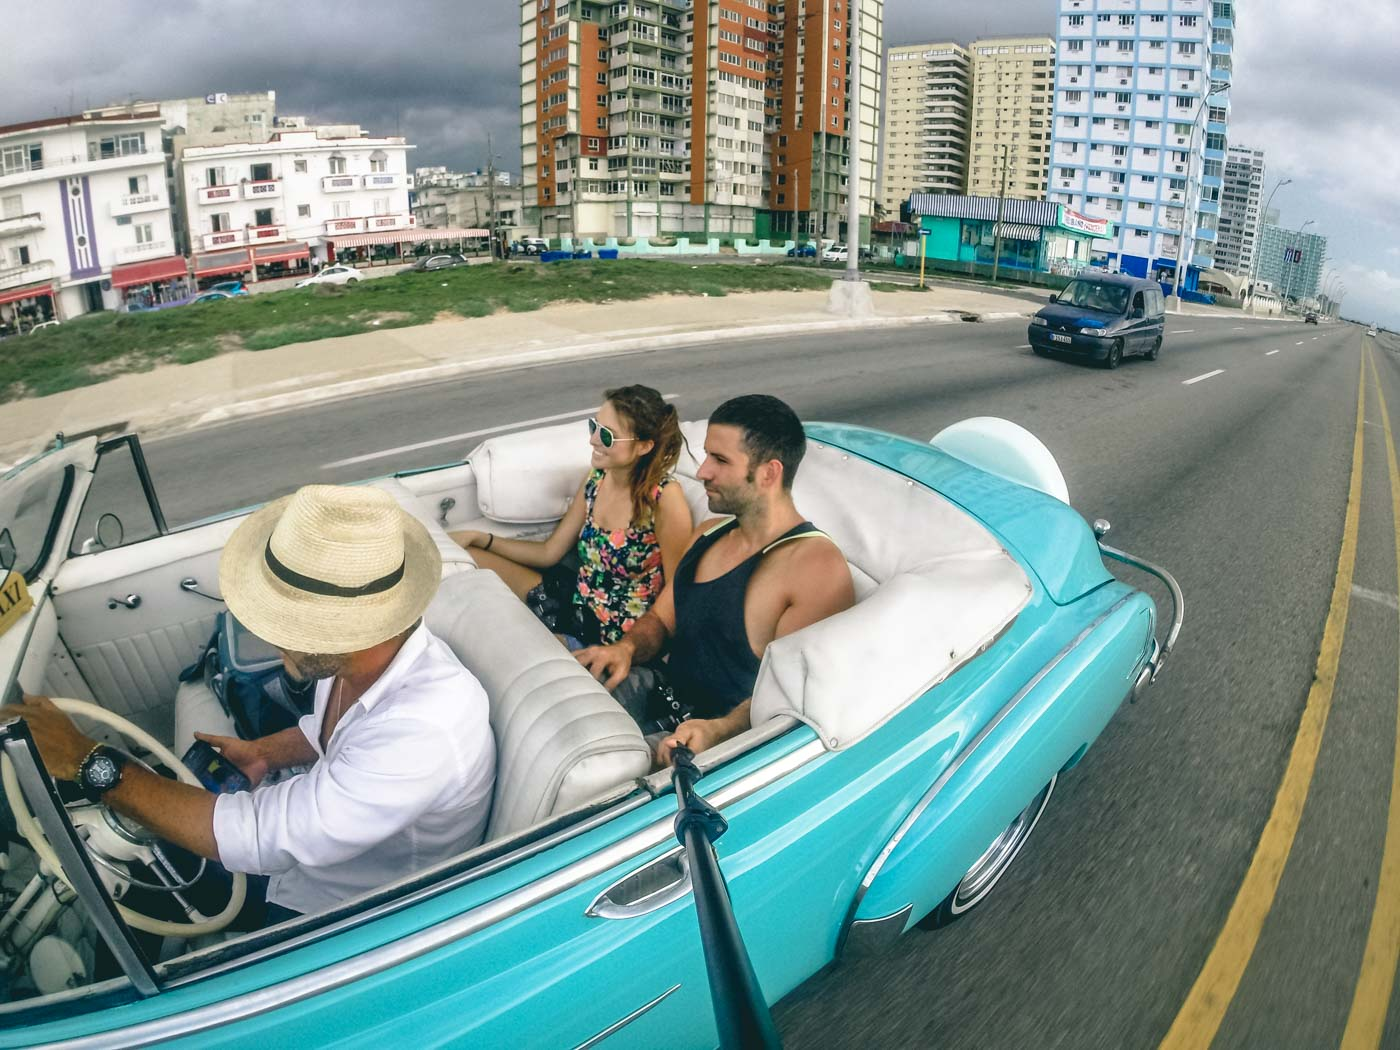 buying travel insurance, interesting facts about cuba